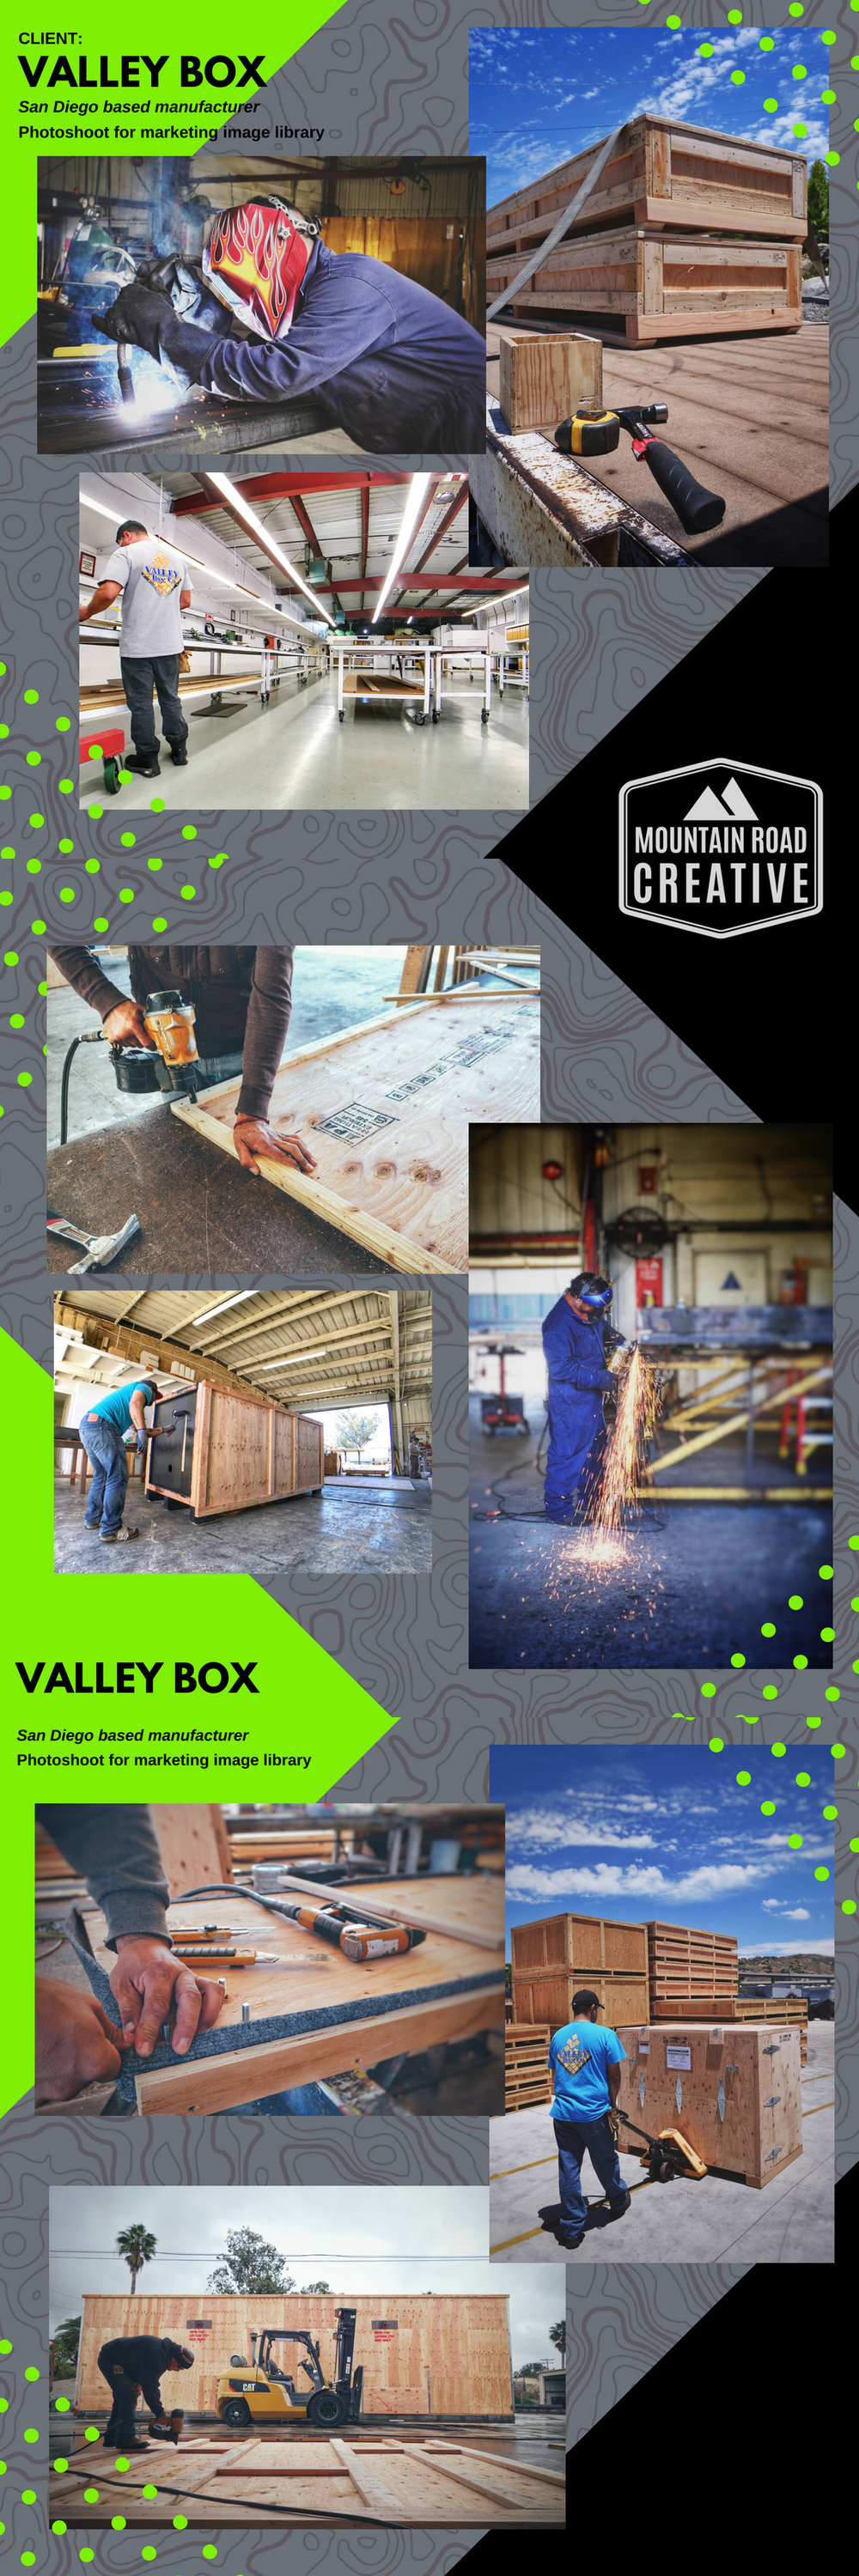 Valley Box Portfolio Image.jpg